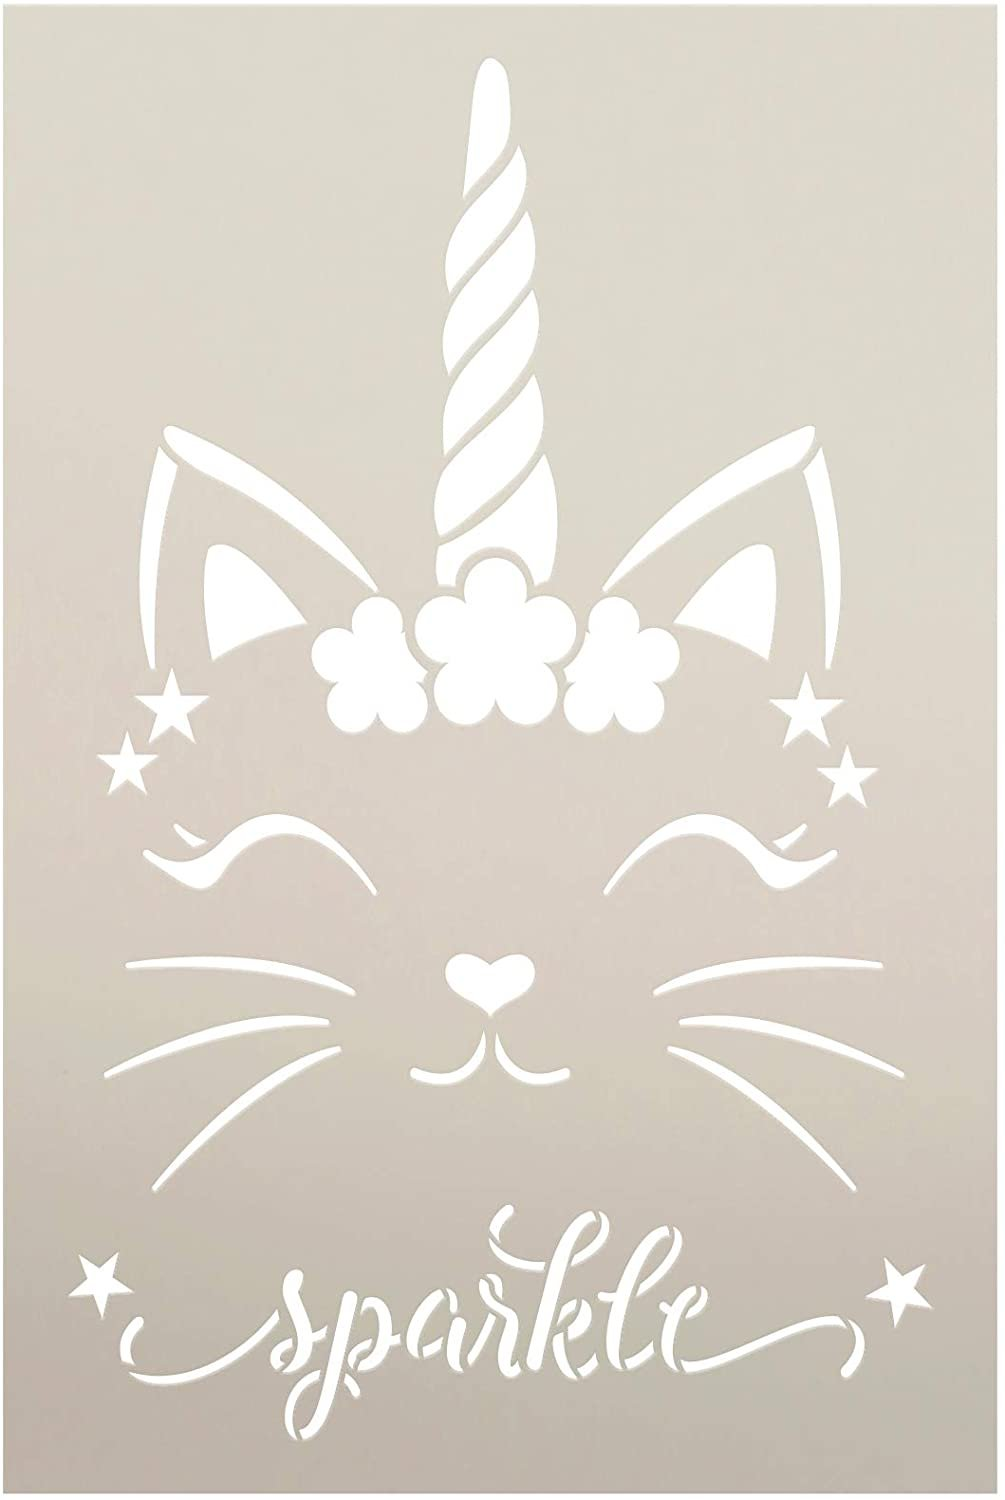 Sparkle Unicorn Kitty Stencil by StudioR12 | DIY Flower Glitter Cute Home Decor Gift | Craft & Paint Wood Sign | Reusable Mylar Template | Select Size